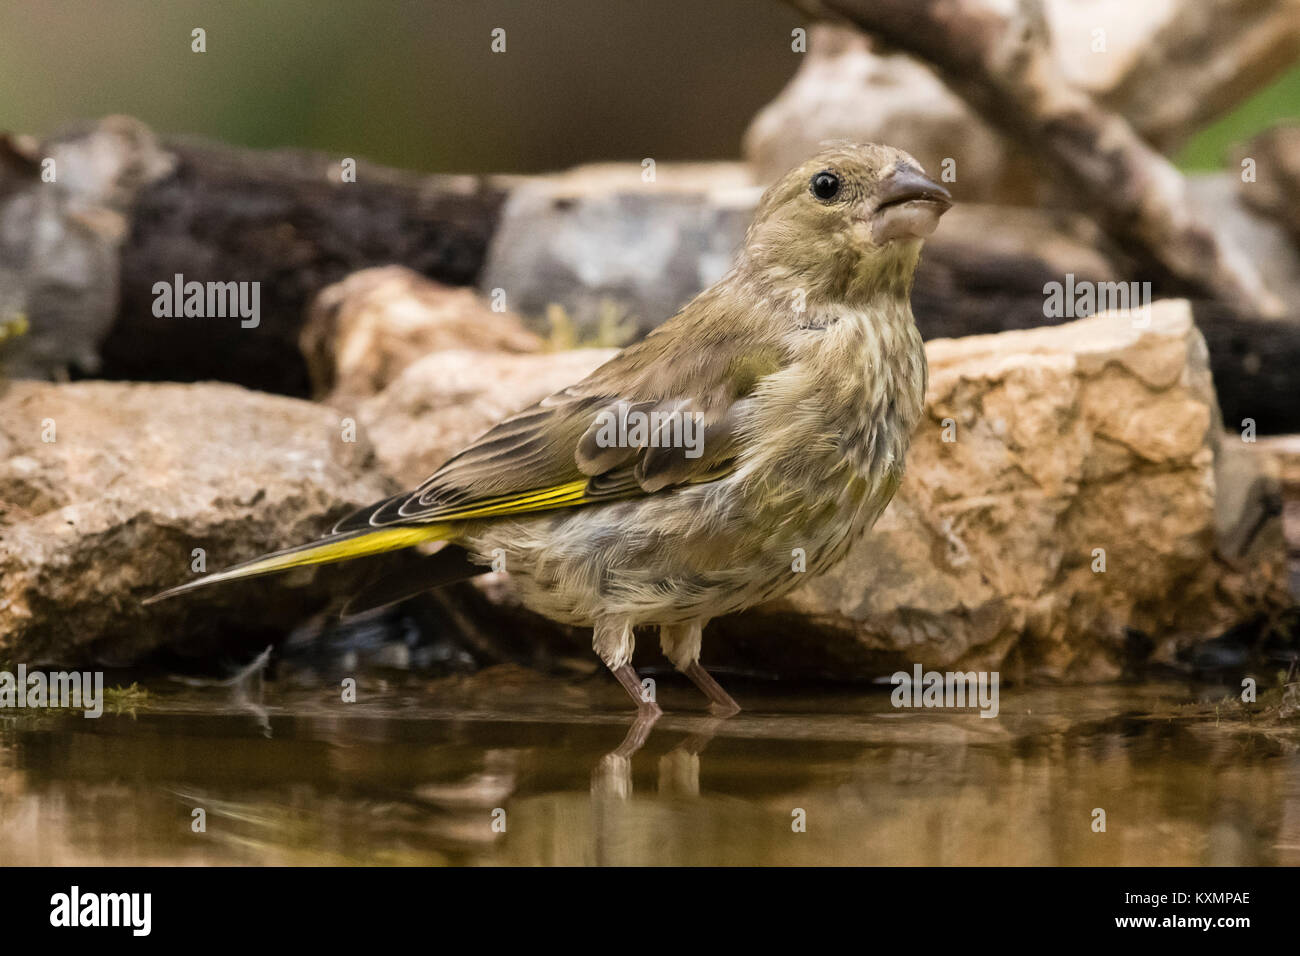 Greenfinch (Carduelis chloris) standing in watering hole,Slovenia Stock Photo